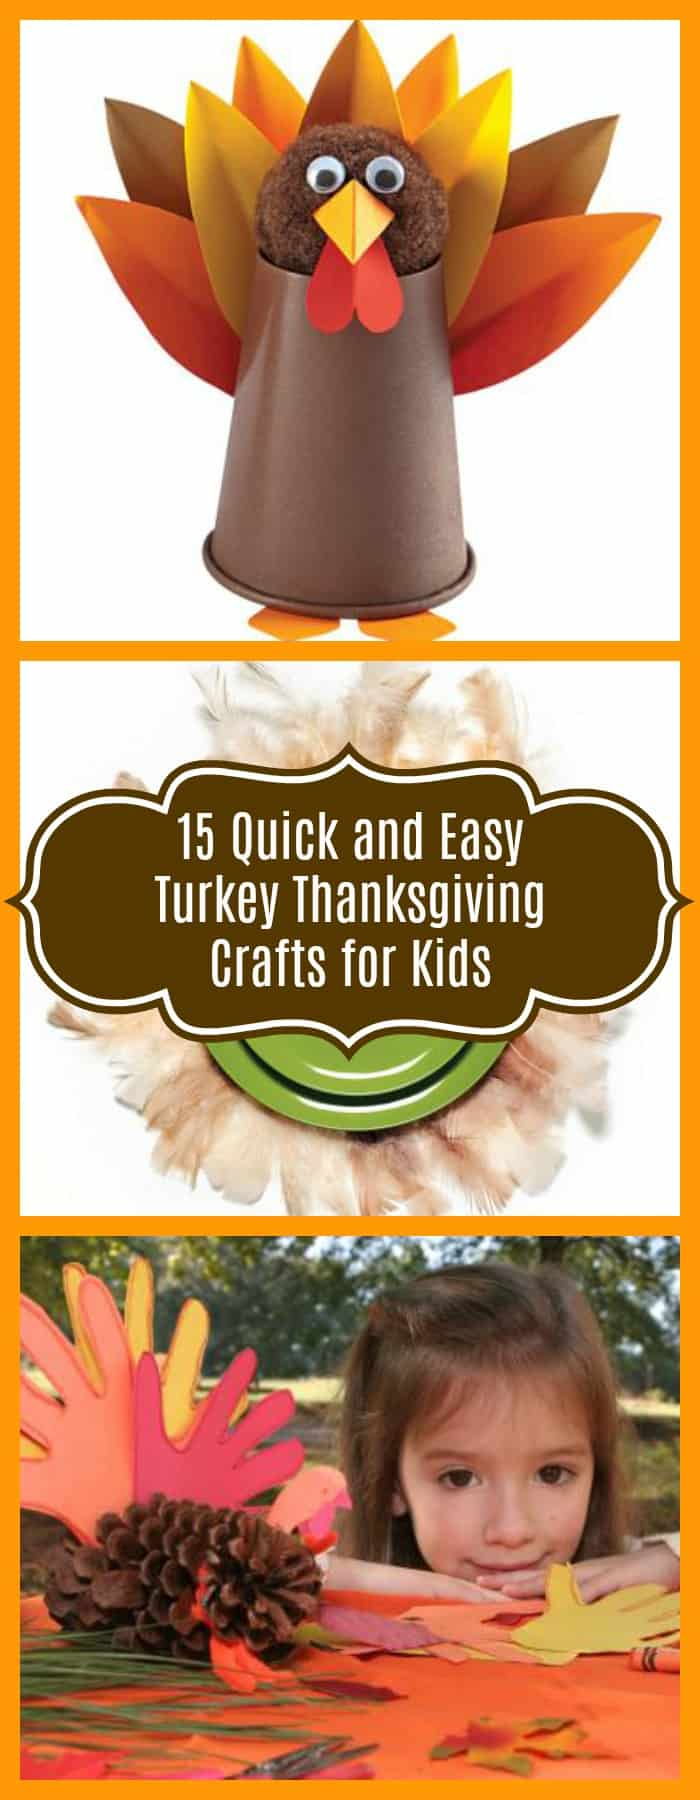 Crafts-15 Quick and Easy Turkey Thanksgiving Crafts for Kids-The Organized Mom